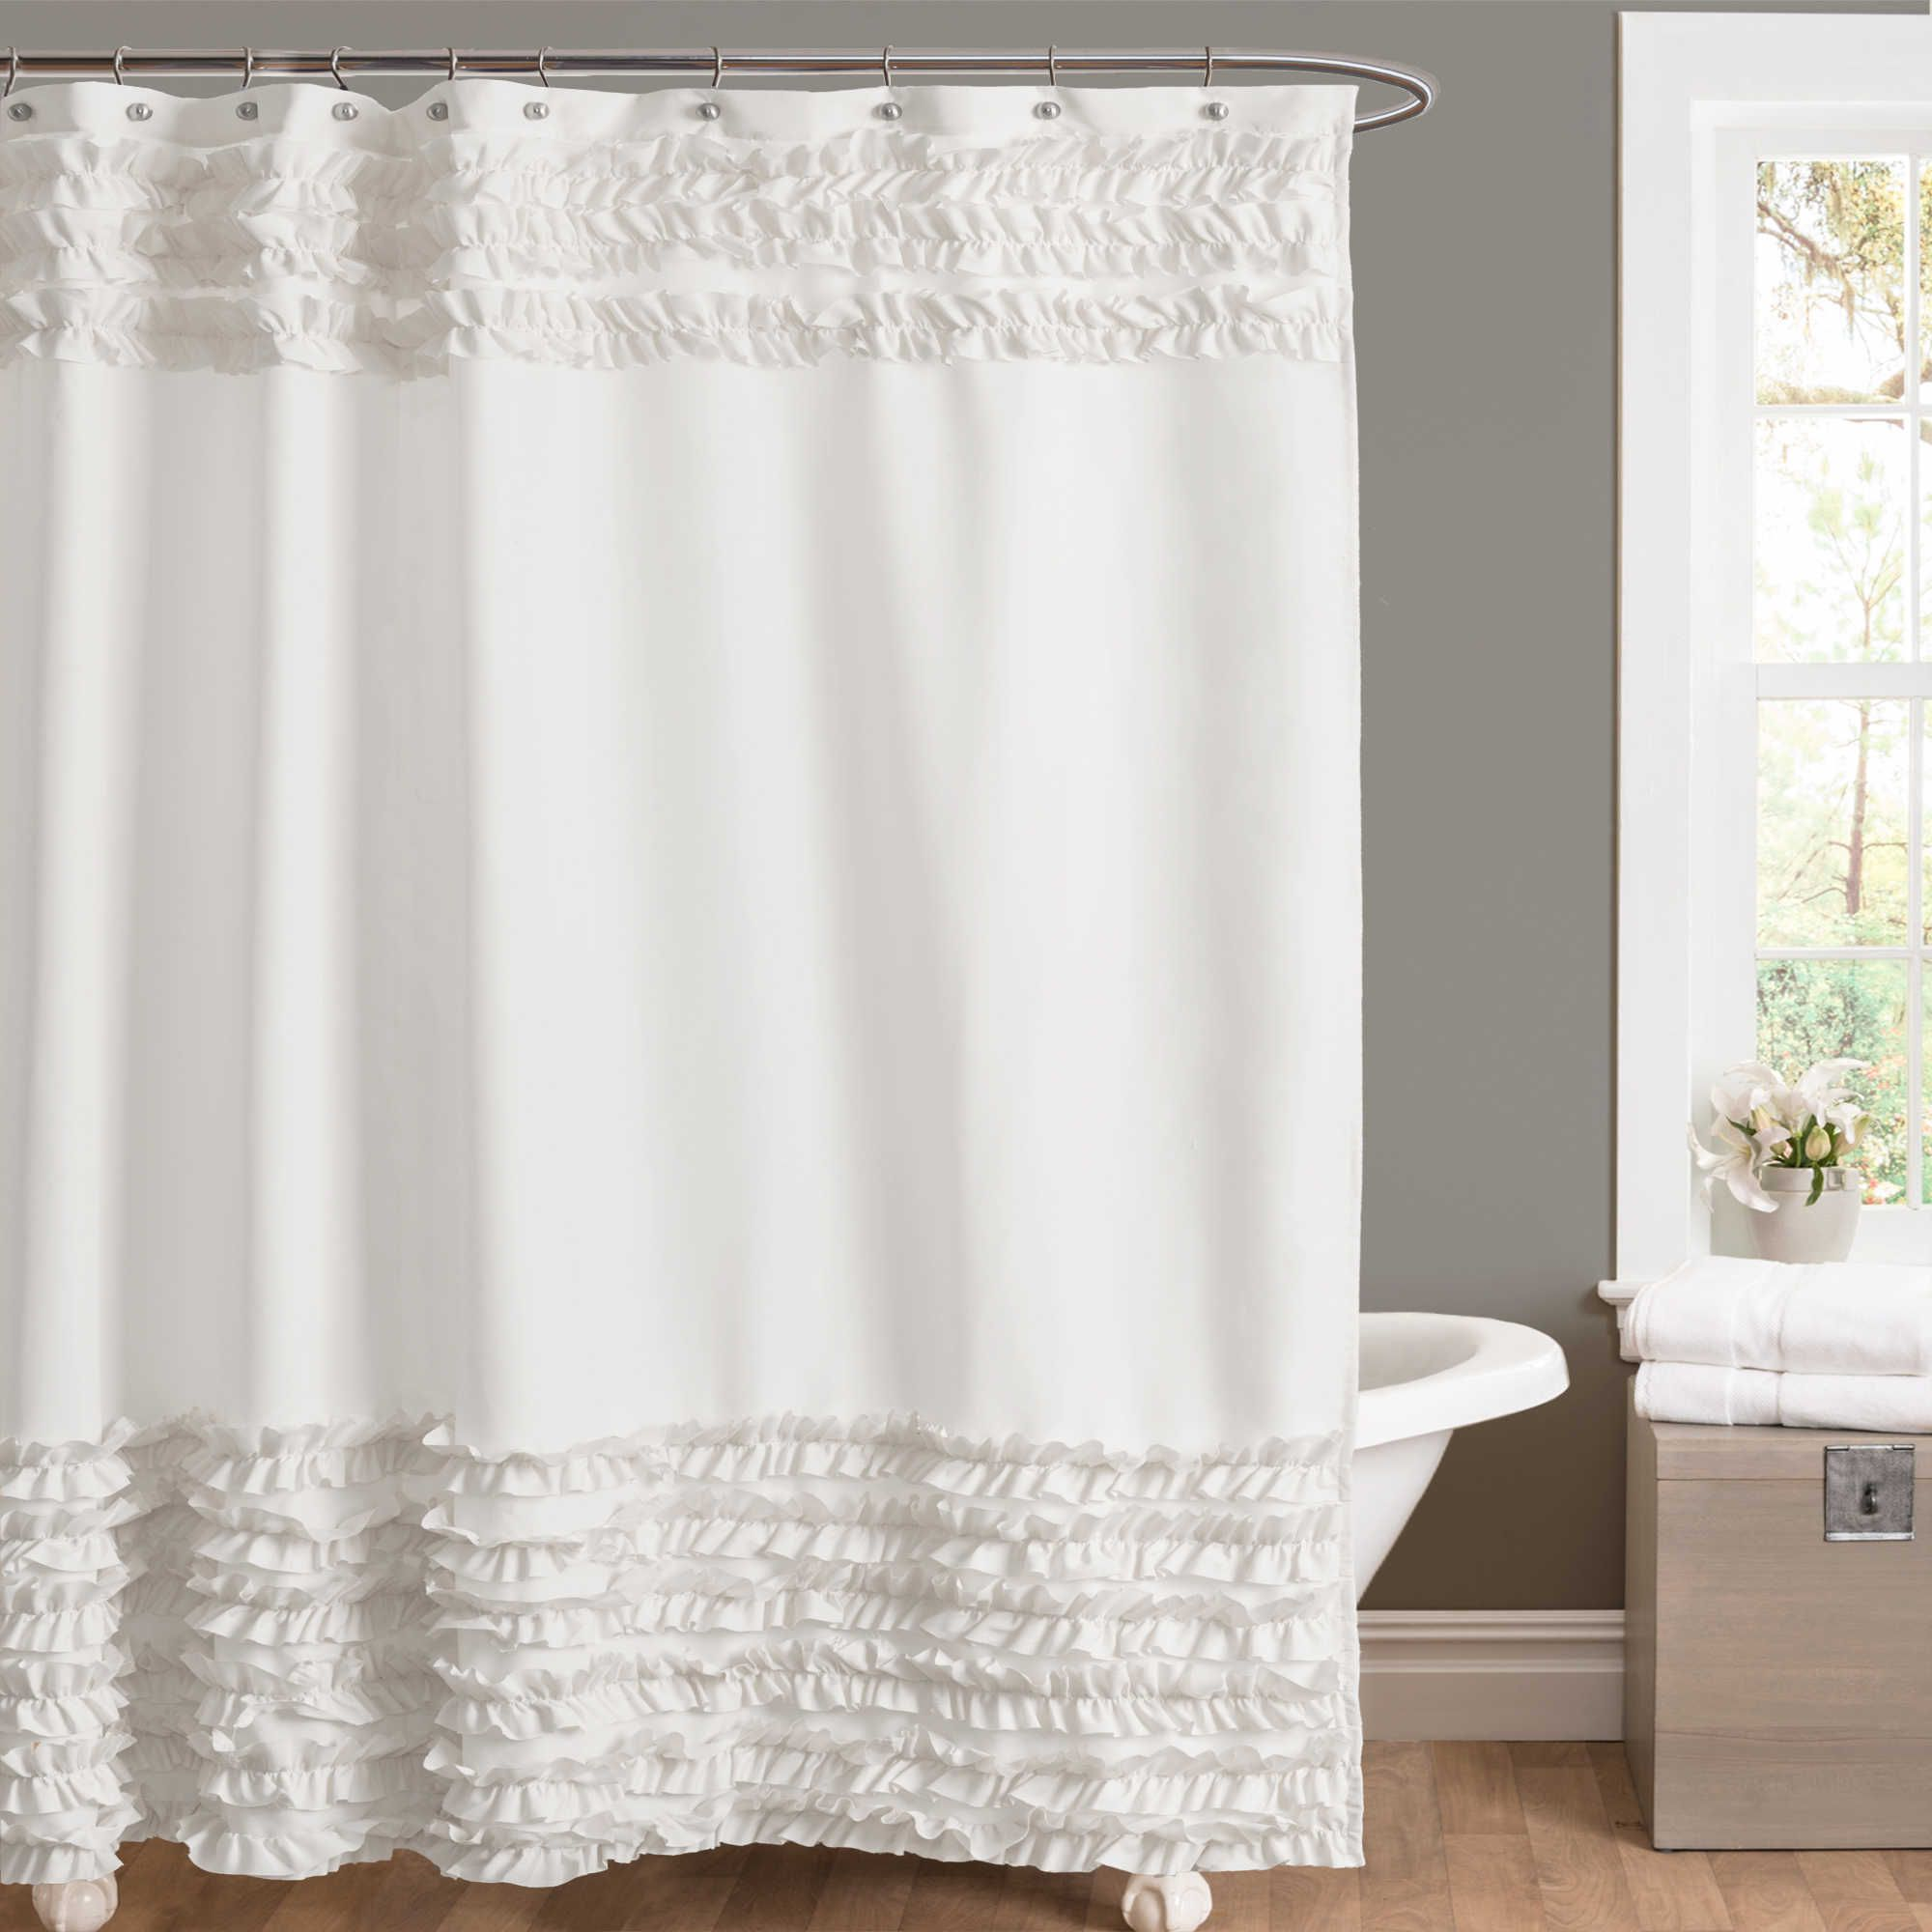 Amelie Ruffle 54 Inch X 78 Shower Curtain In White